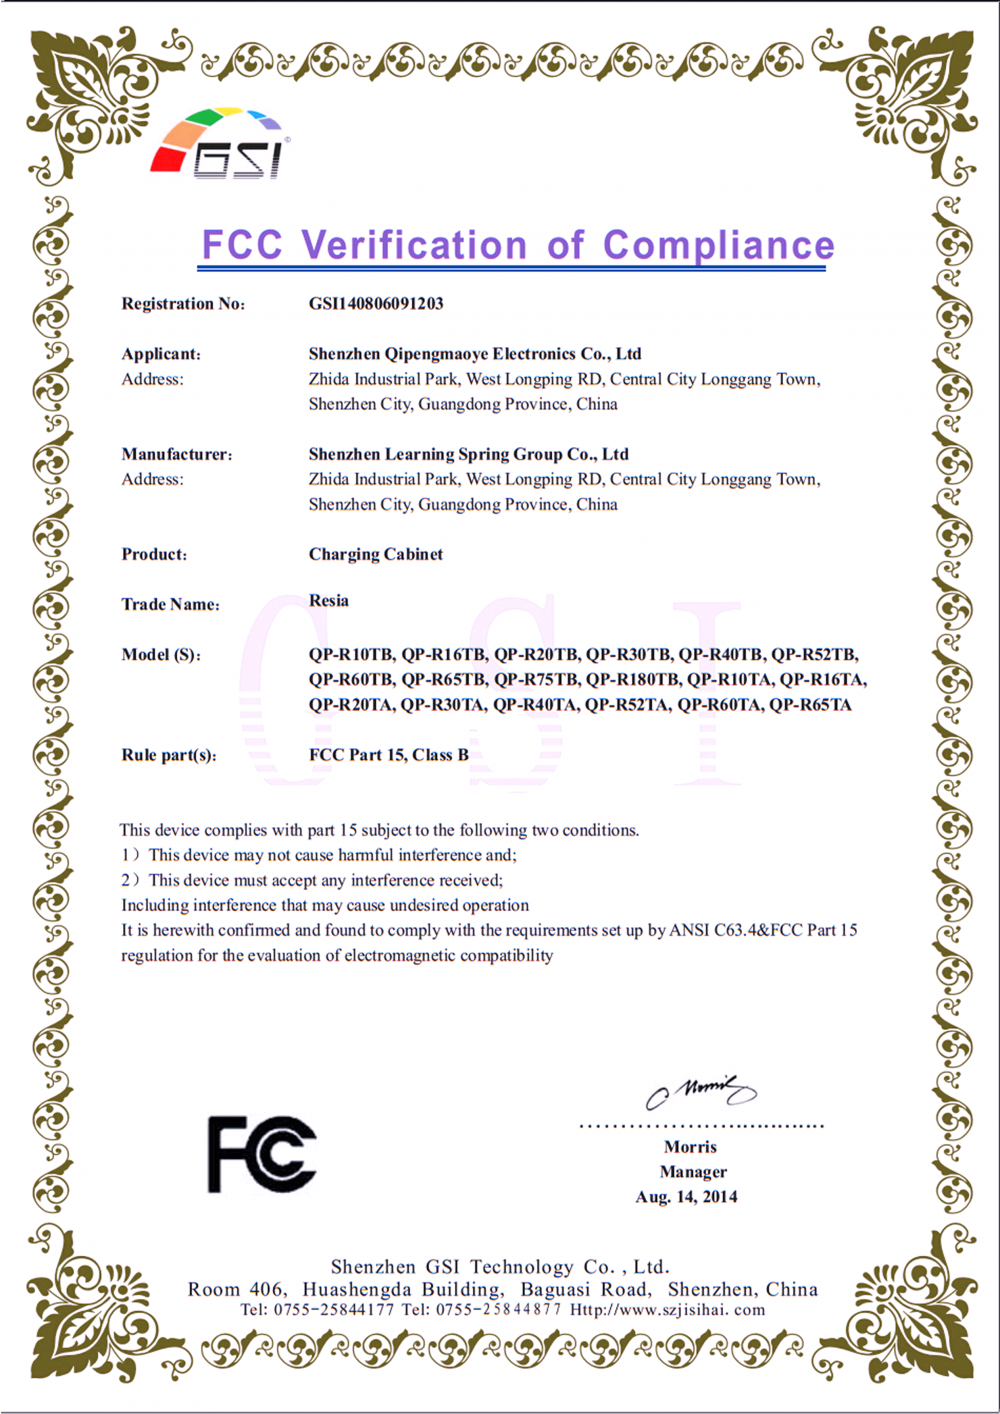 FCC Verification of Compliance